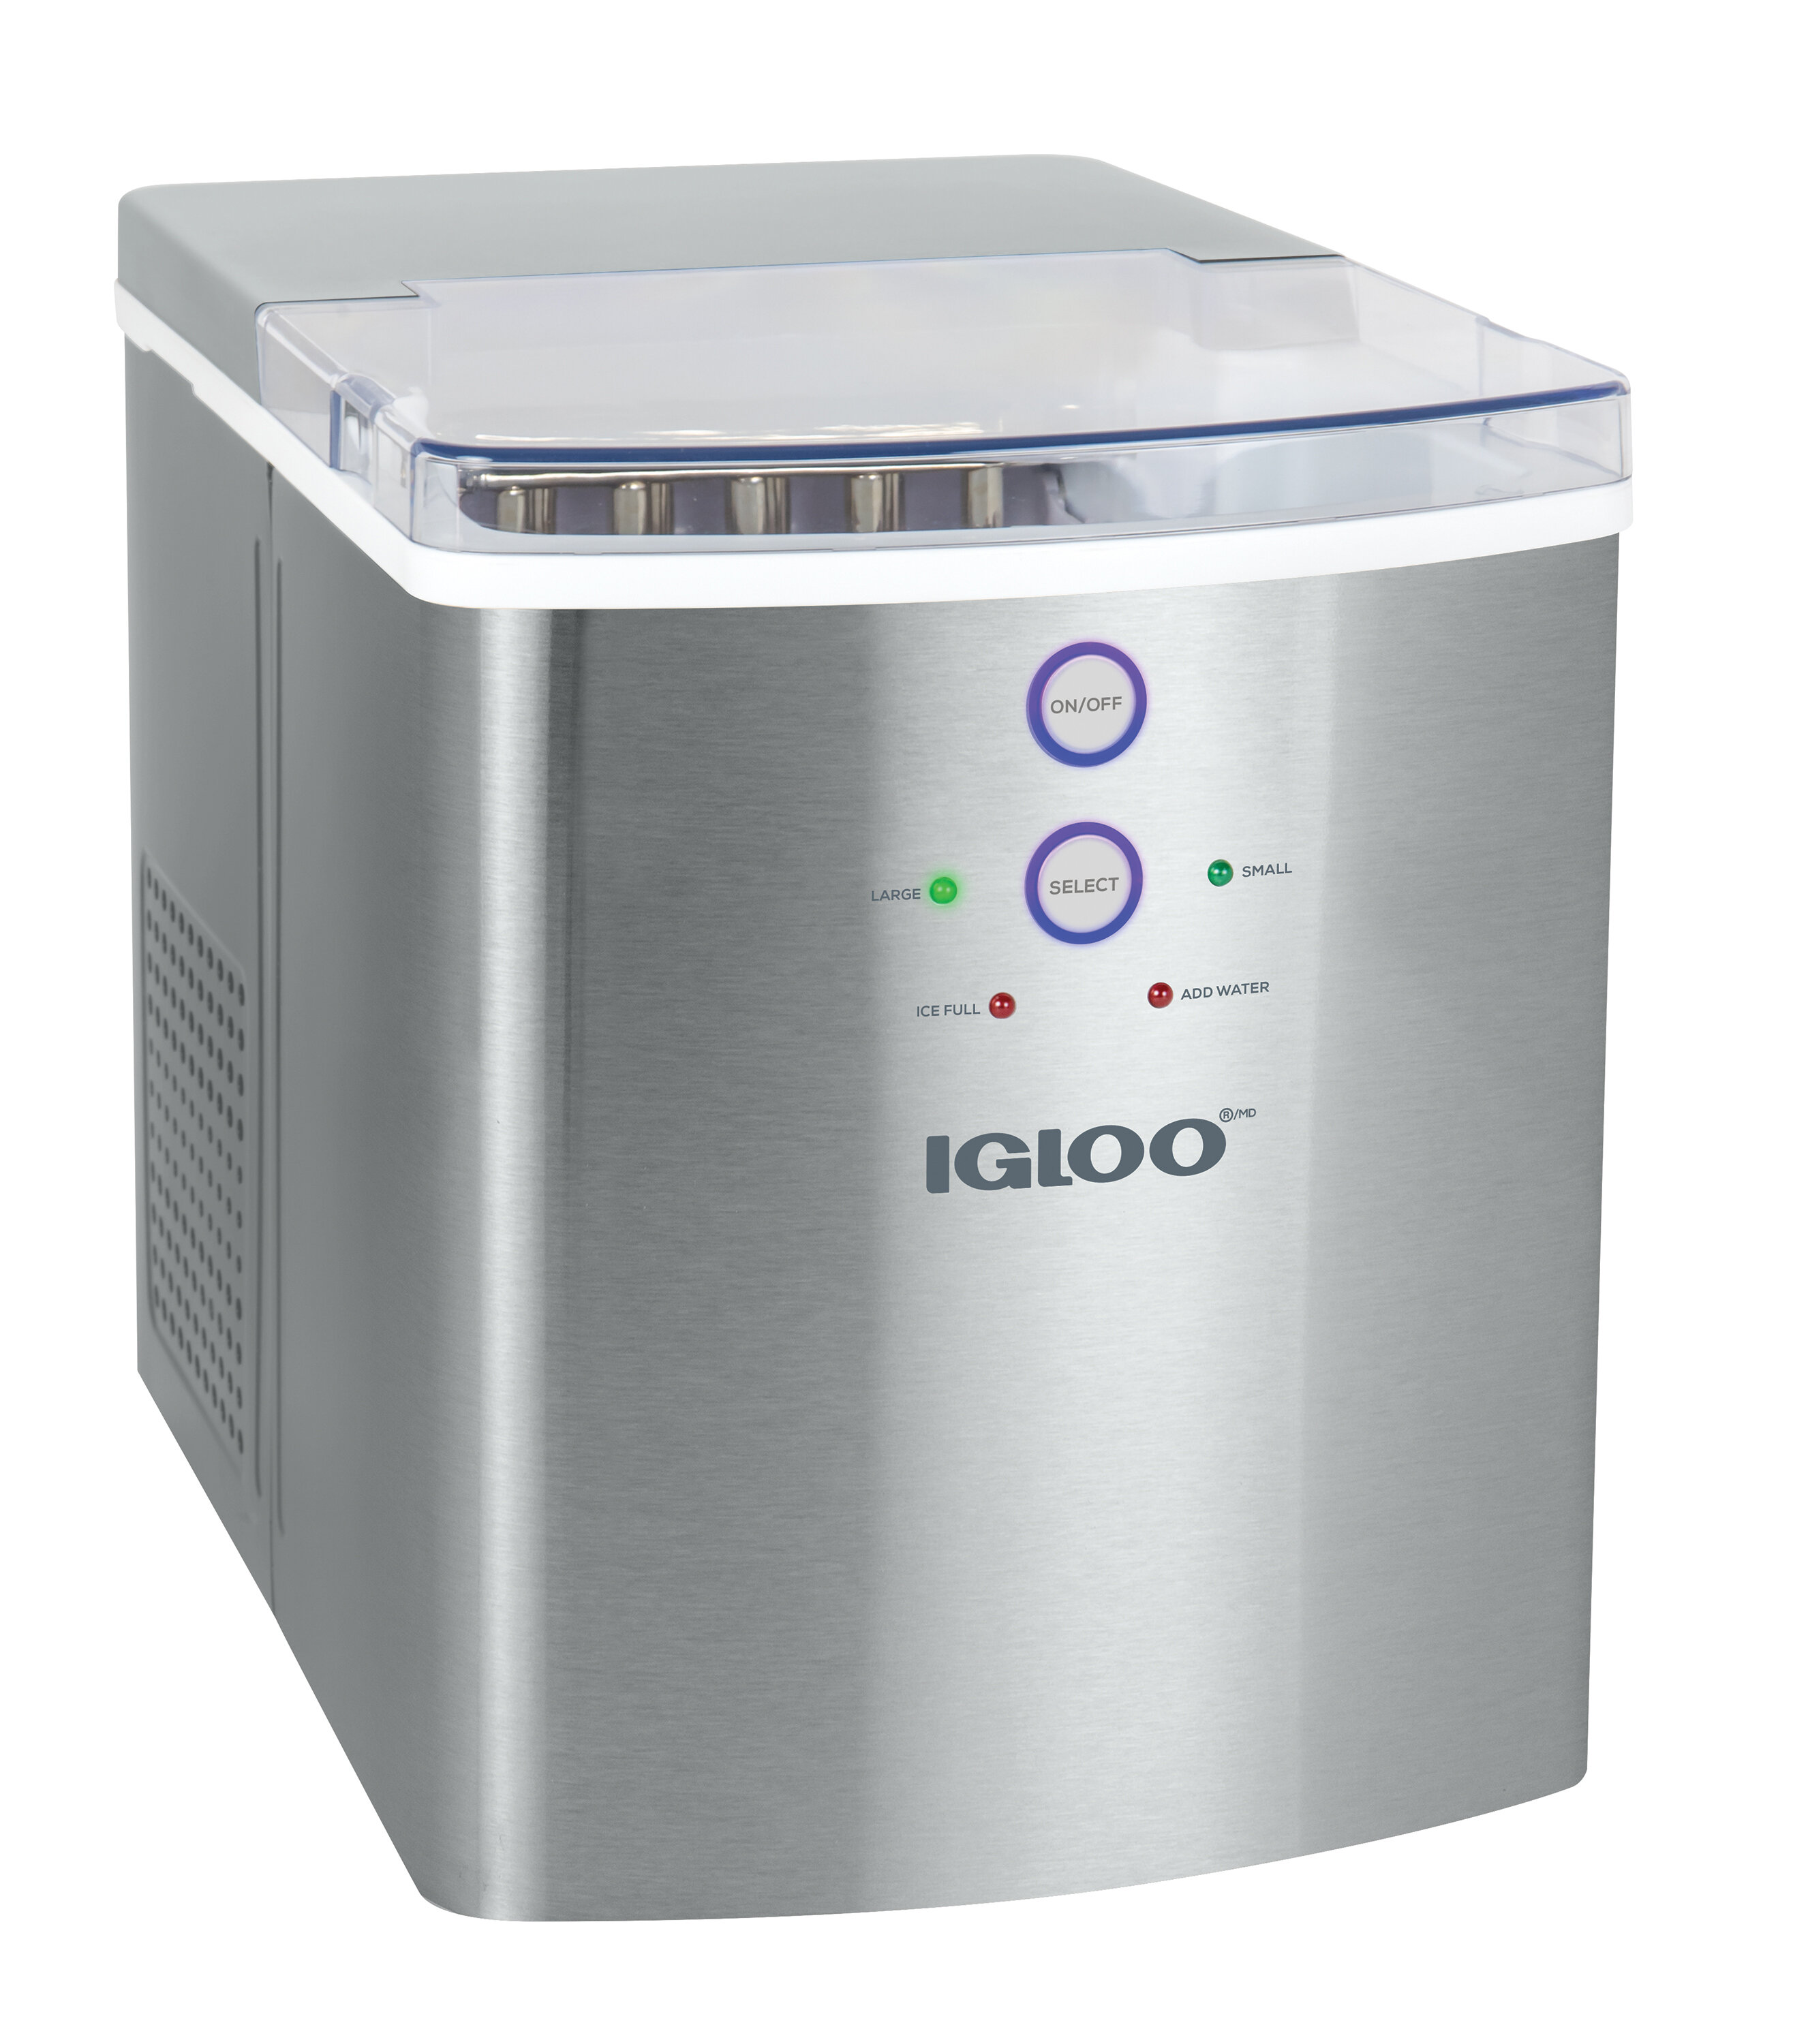 Igloo Large Capacity Automatic 33 Lb Daily Production Portable Ice Maker Reviews Wayfair